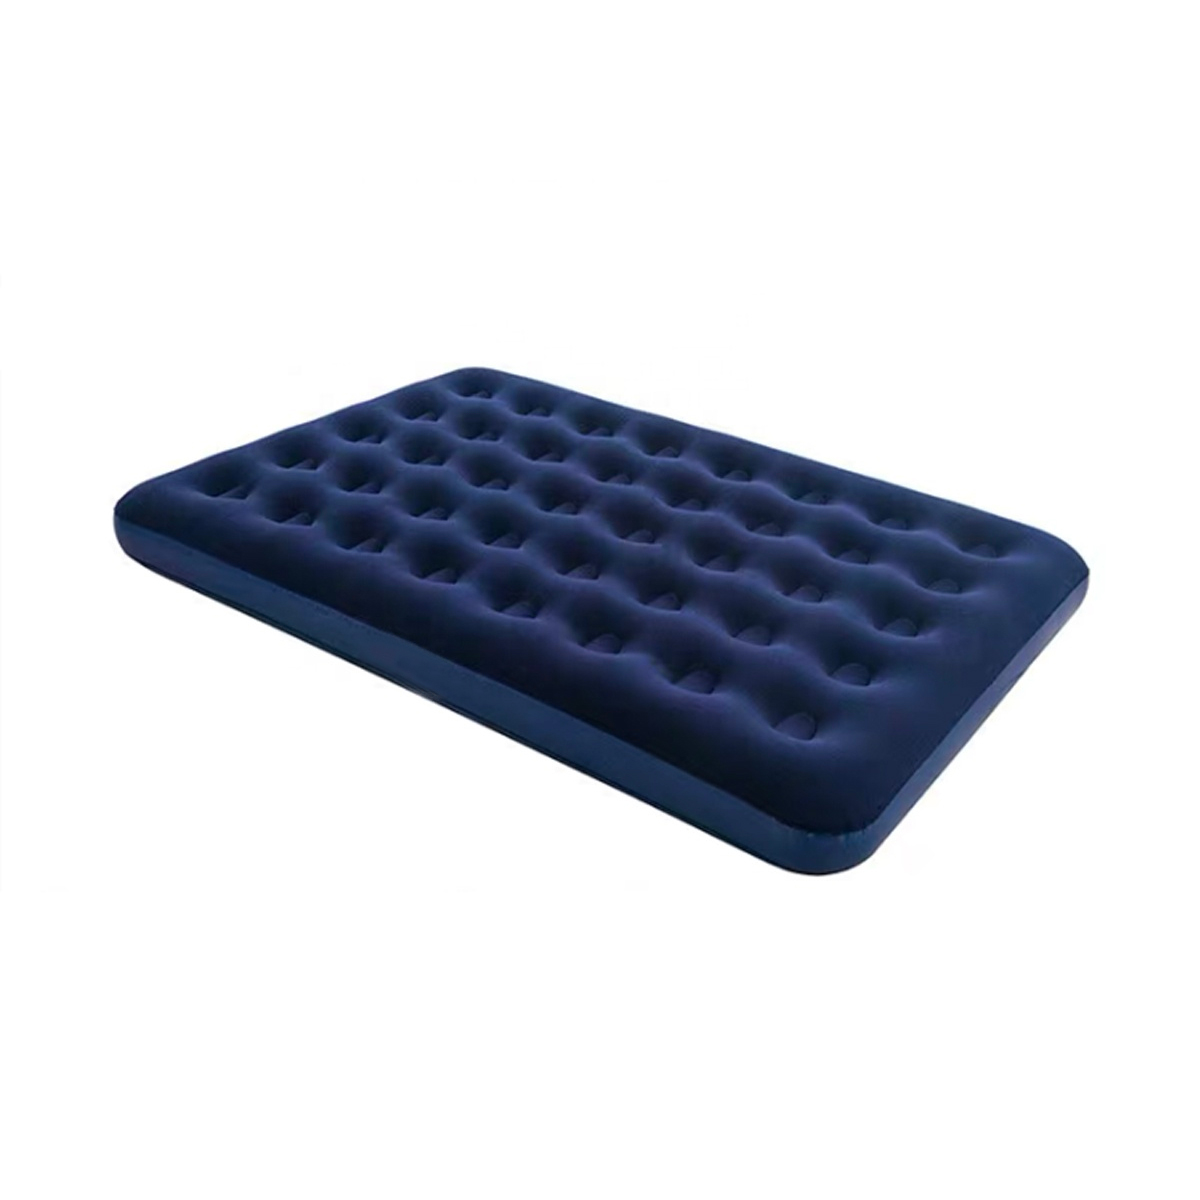 Flocked Air Mattress Blow Up Bed Inflatable double Size Air Bed outdoor camping